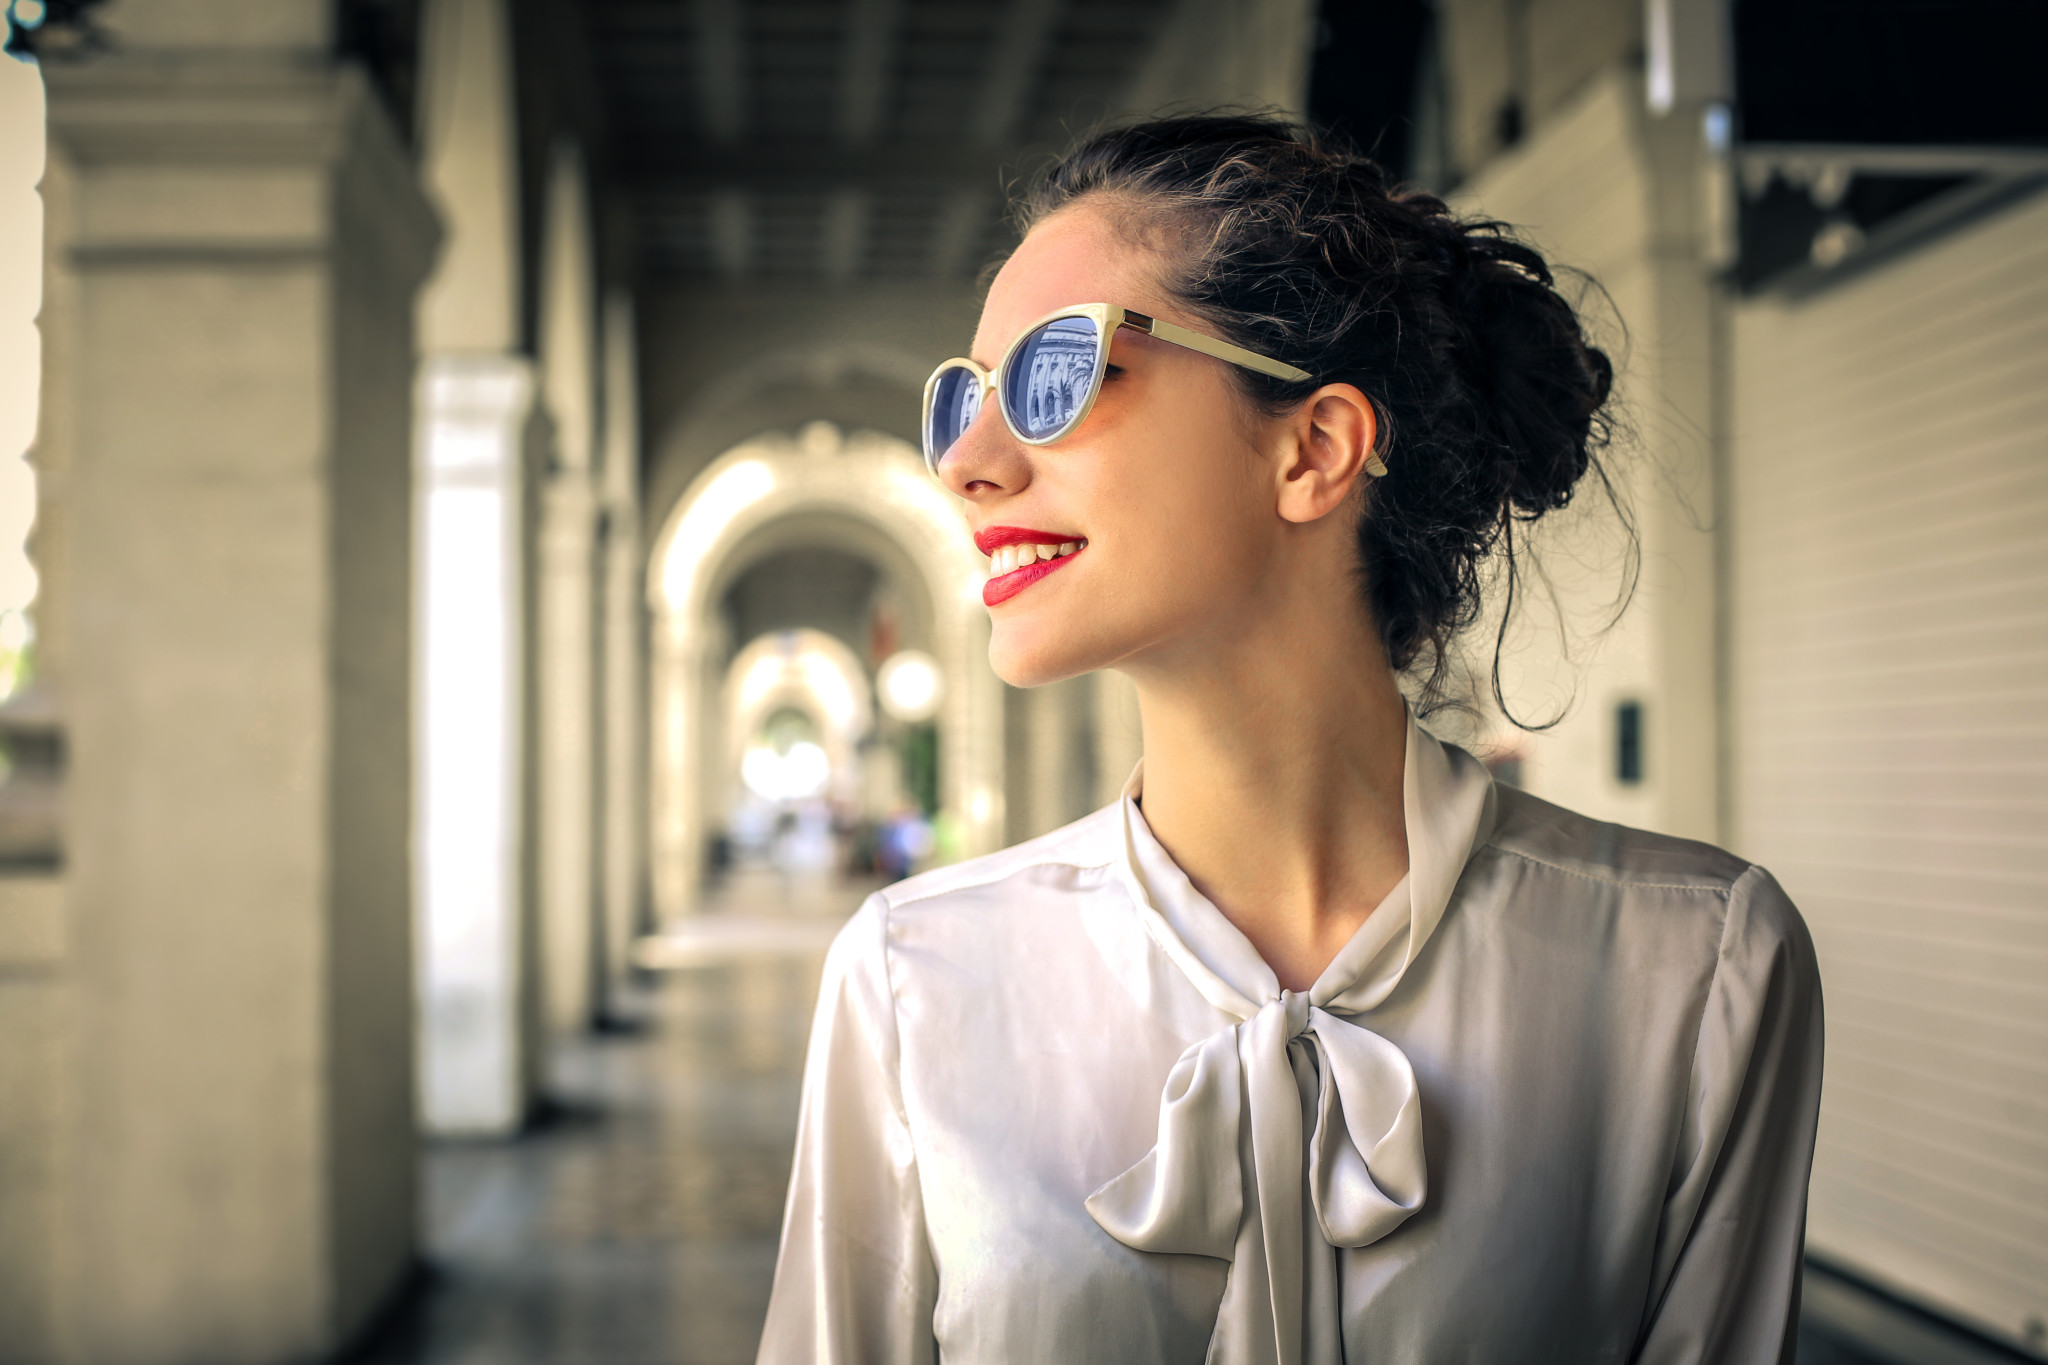 Fashionable woman walking in the city centre